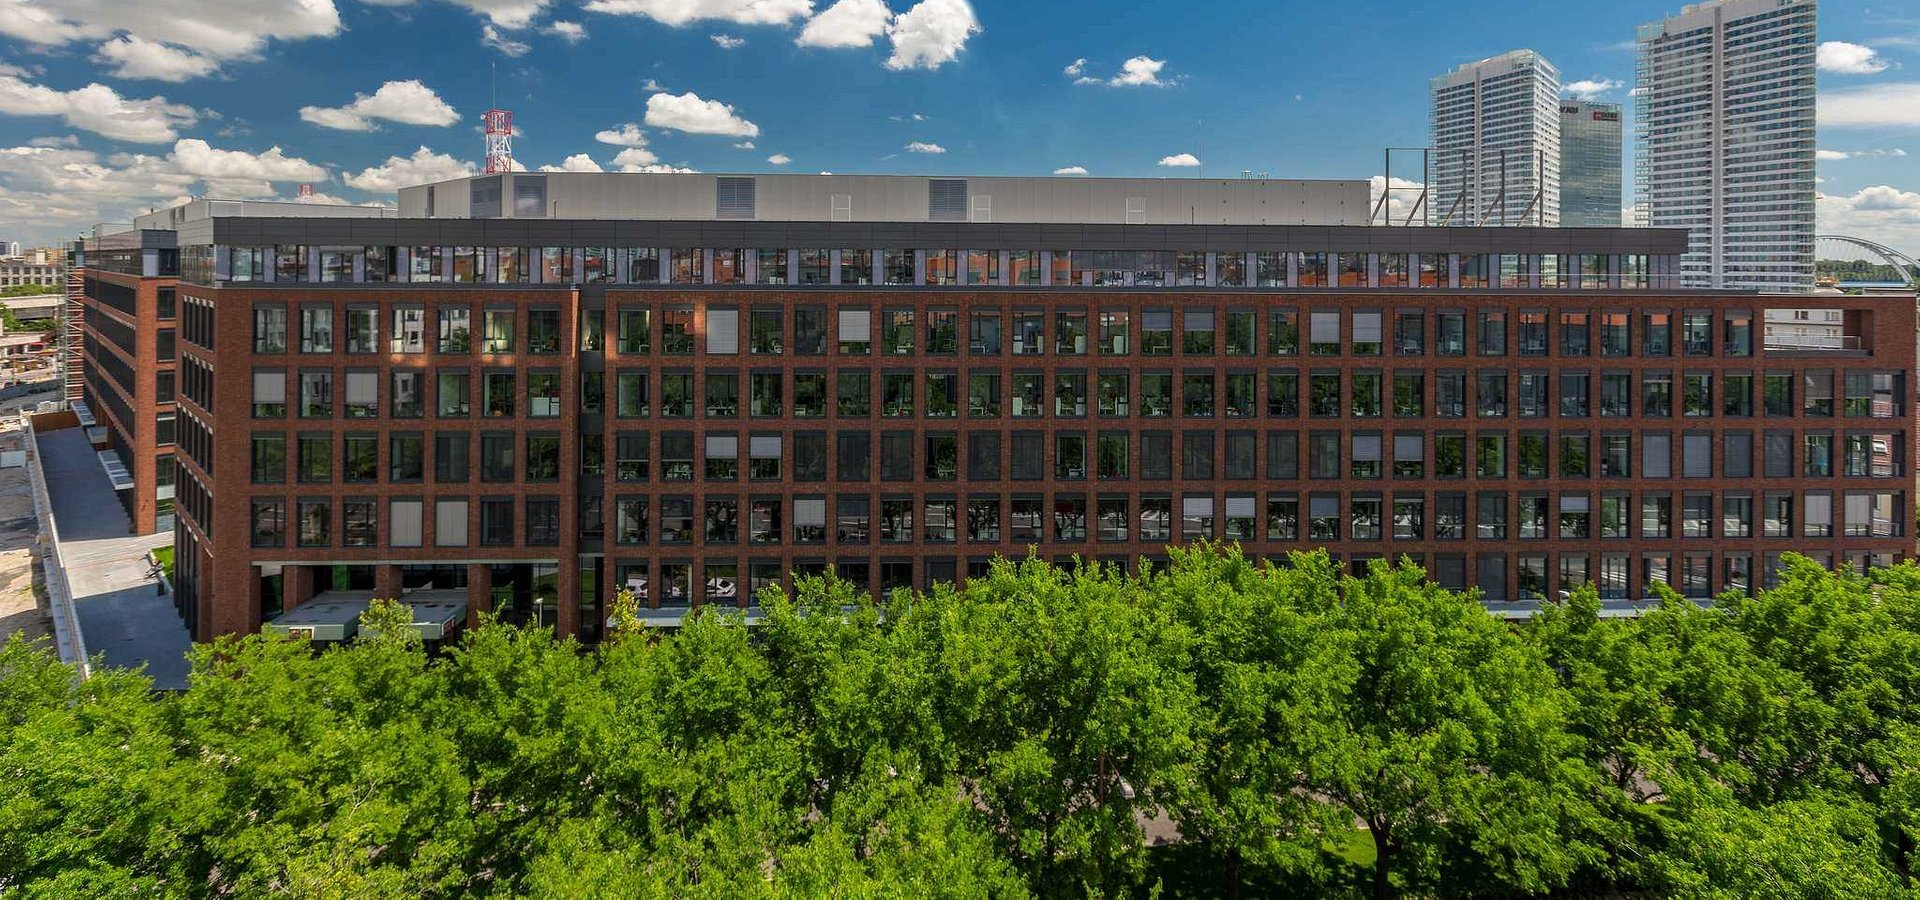 HB Reavis Group sells Twin City A in Bratislava to Prvý realitný fund, managed by IAD Investments